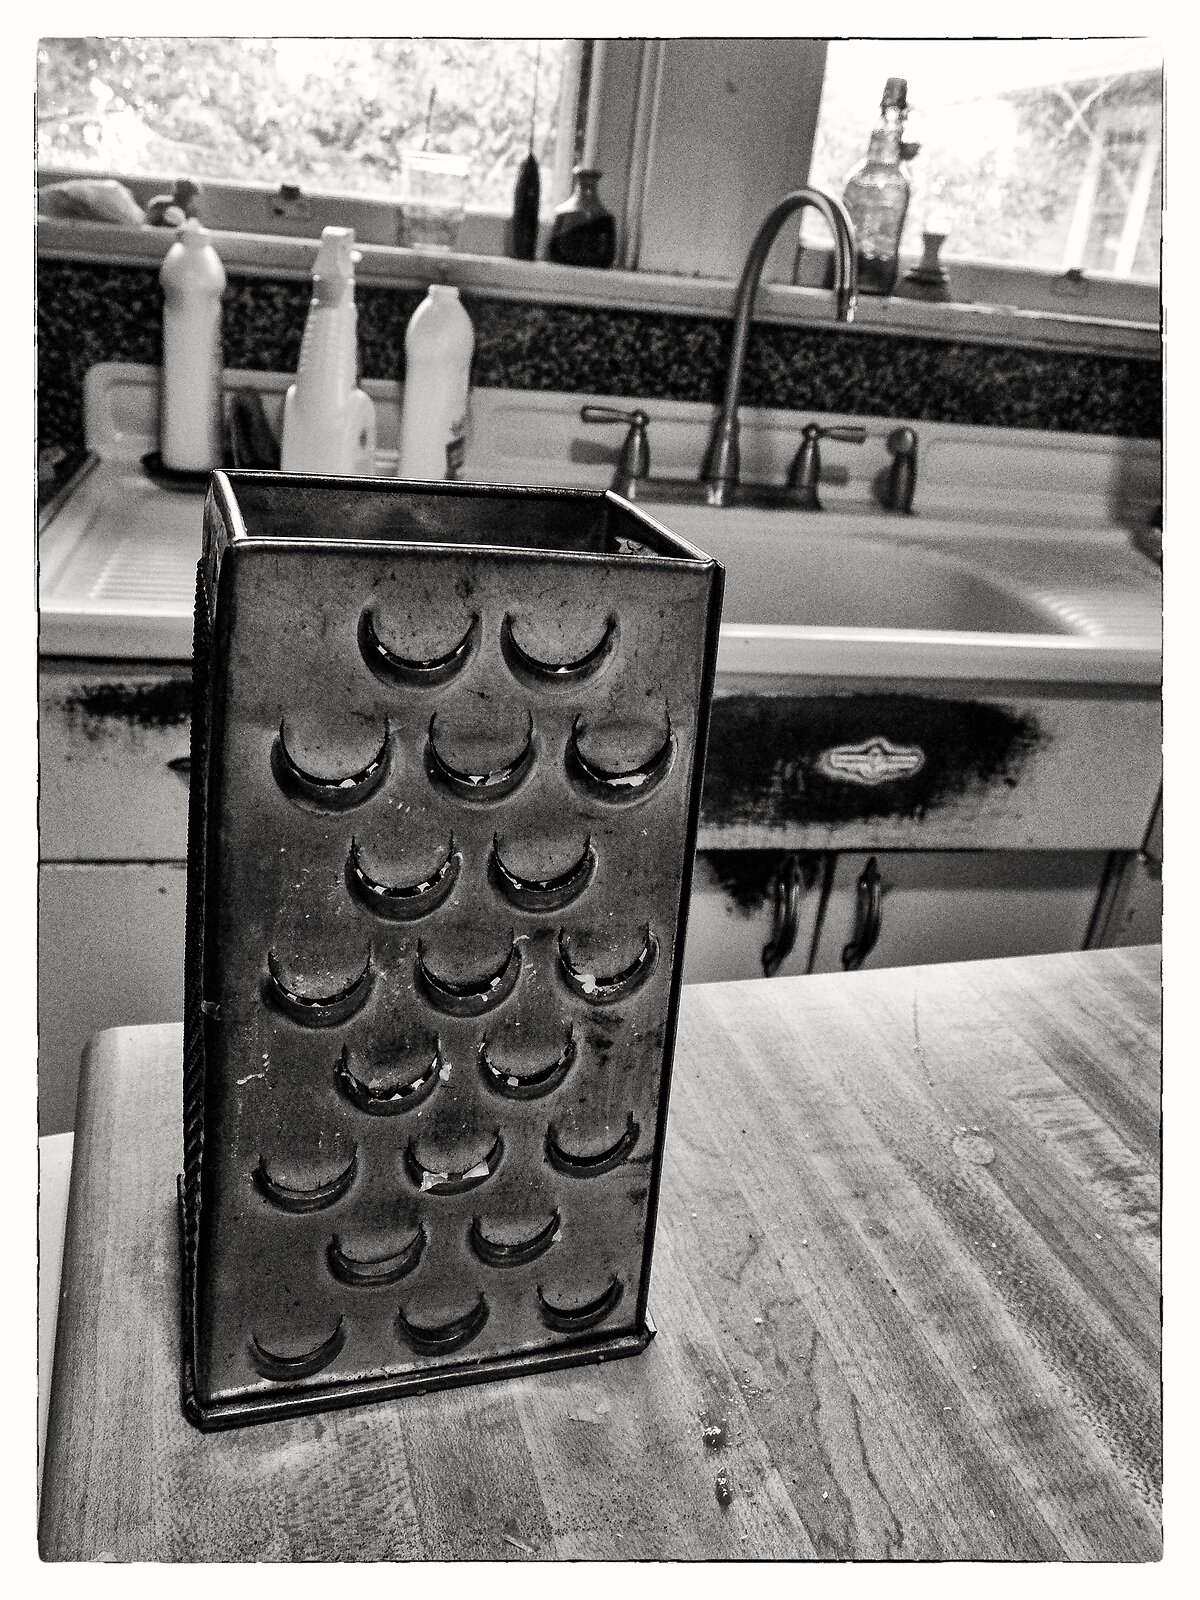 X30_July30_Cheese_Grater(SilverEfex).jpg